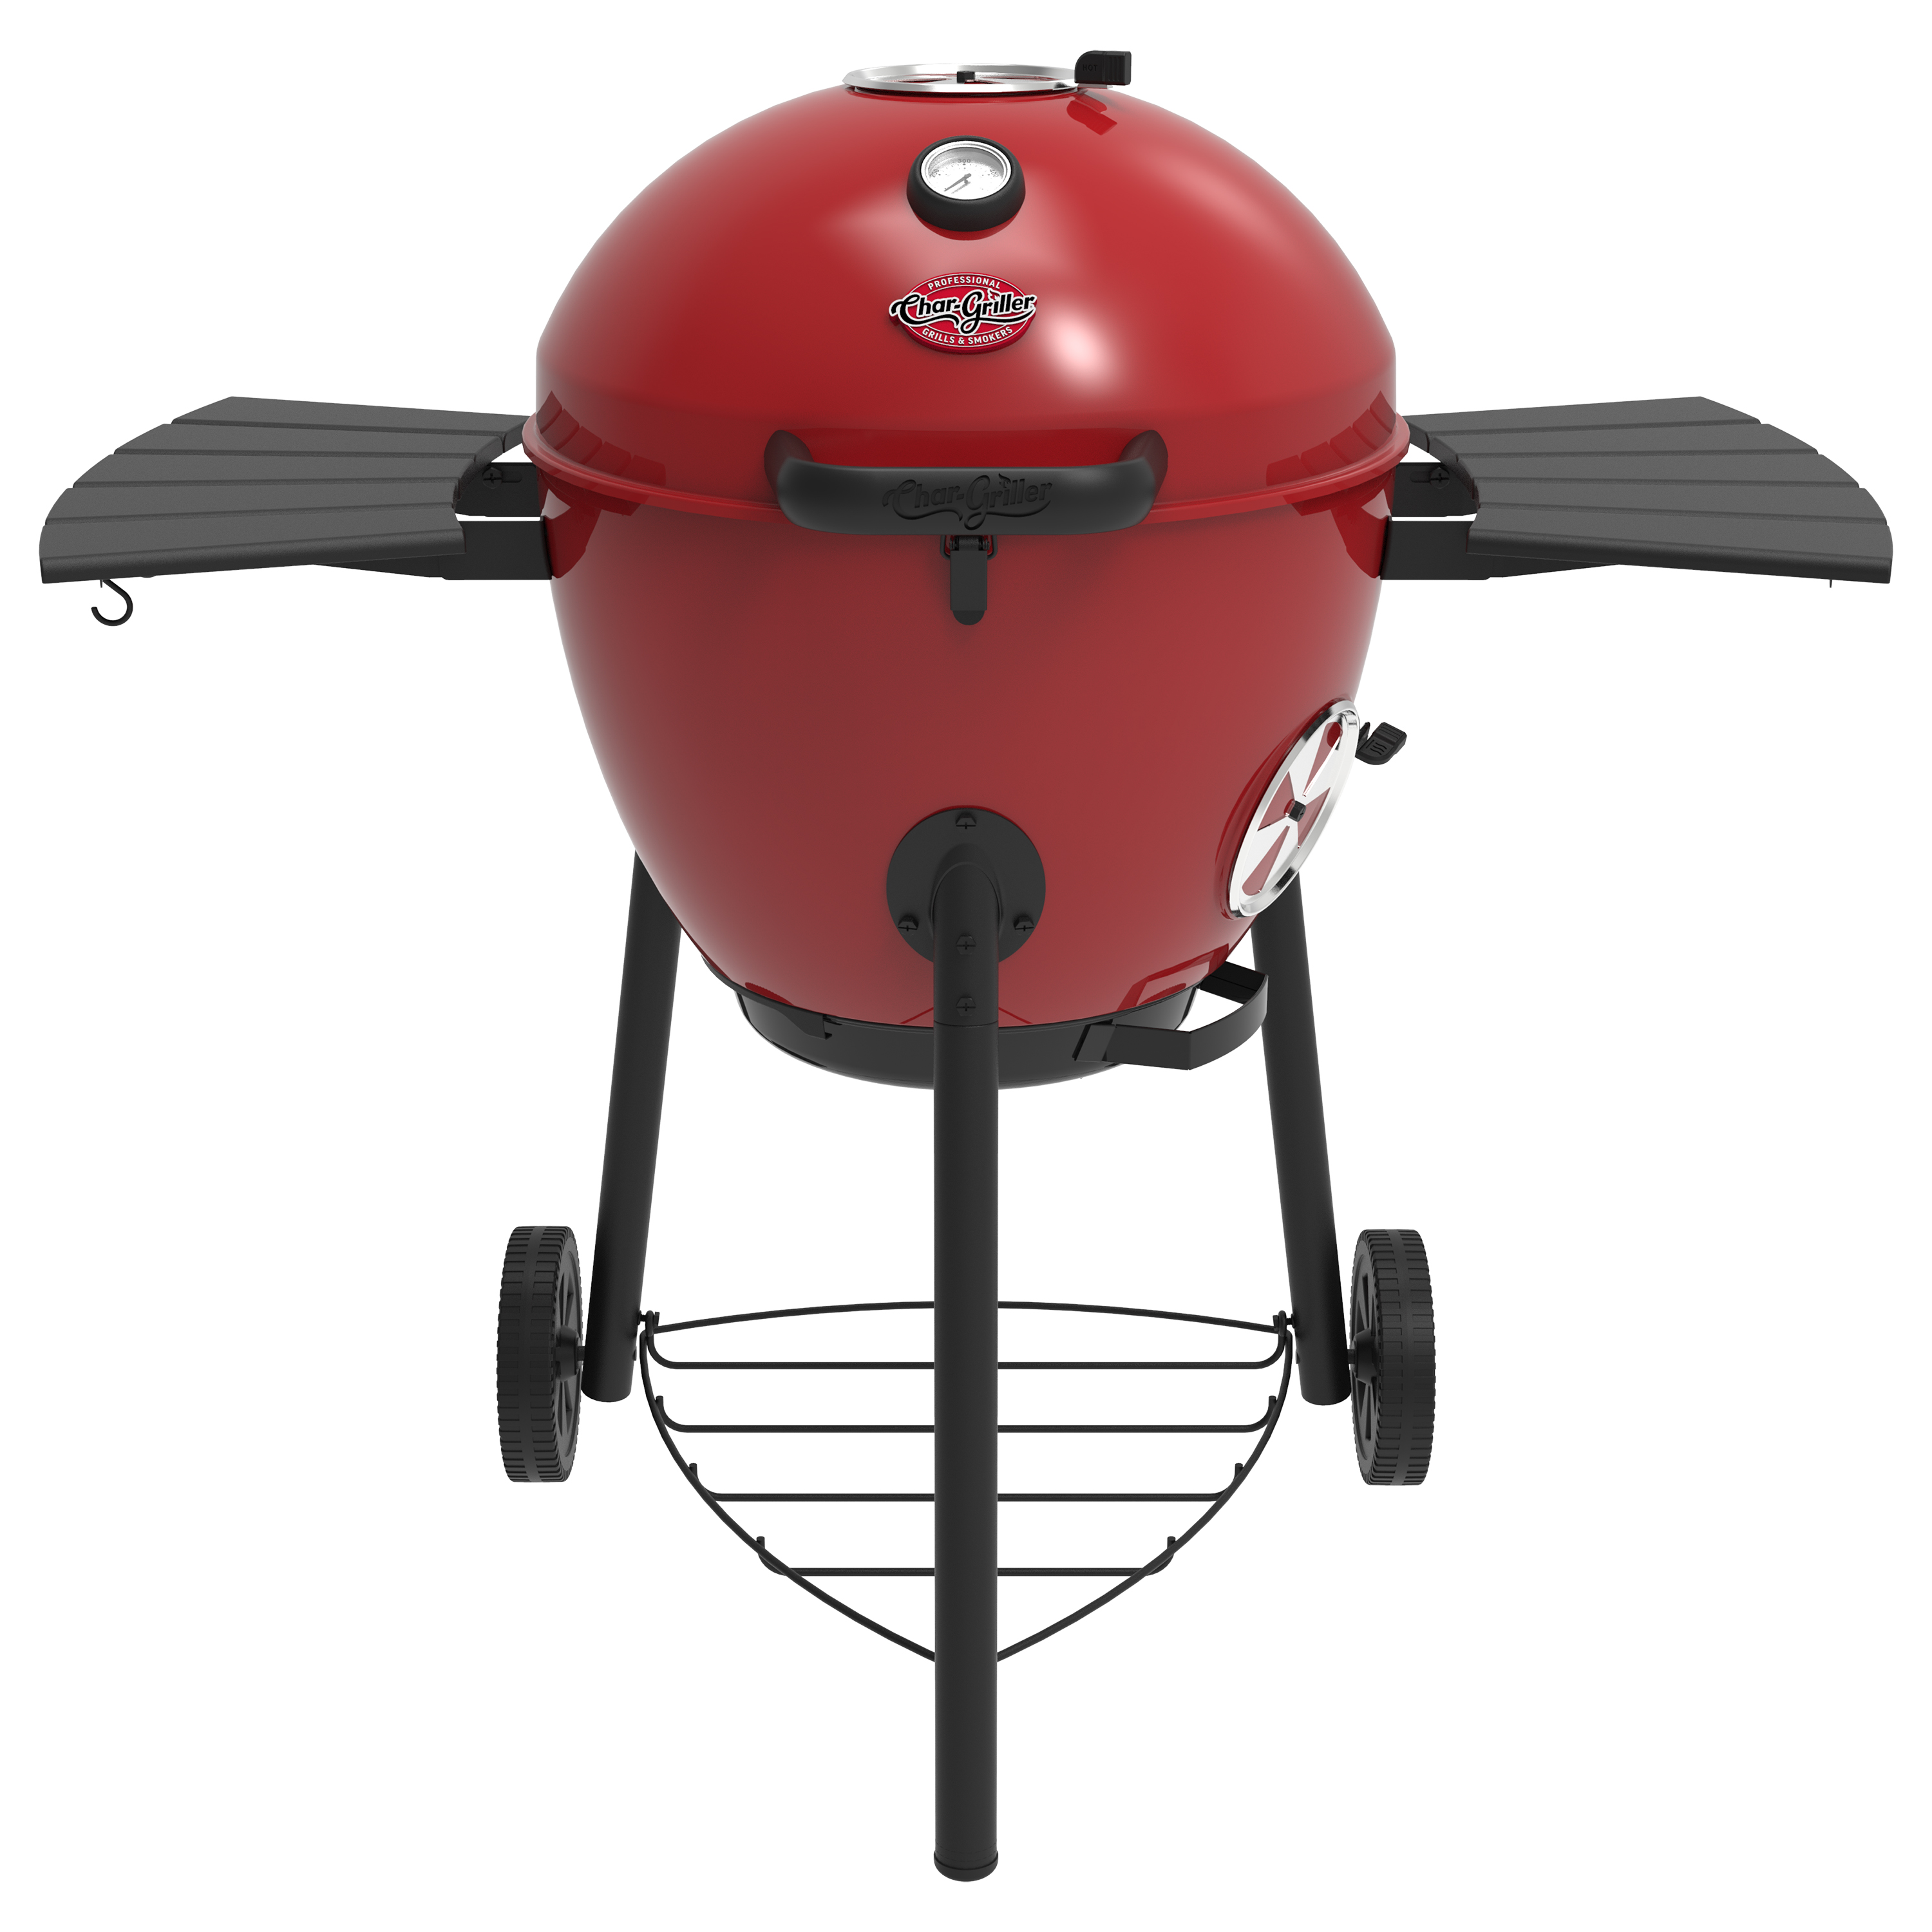 Char-Griller Premium Kettle Charcoal Grill, Red, E14822